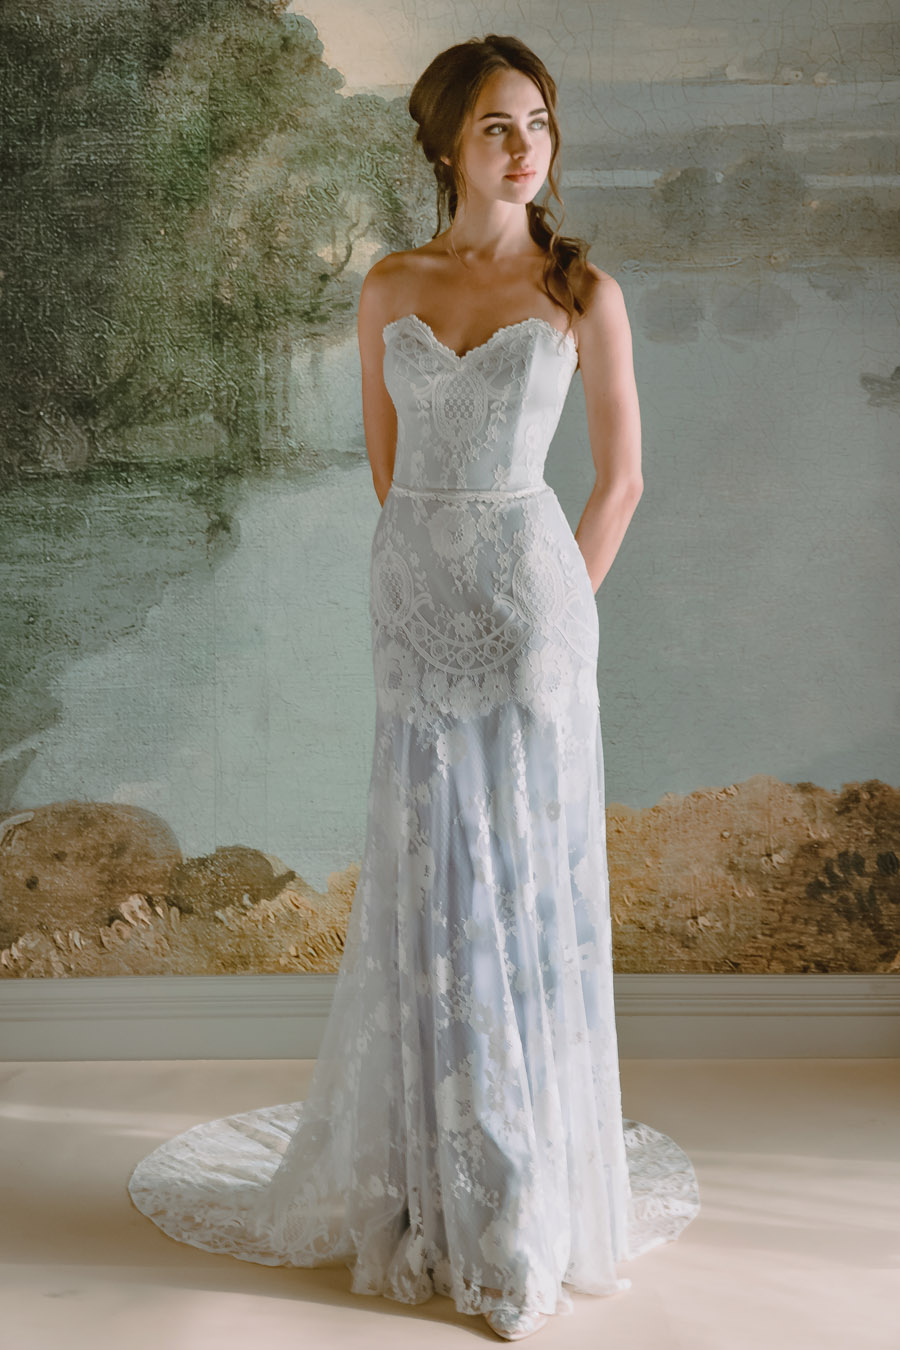 Claire Pettibone 2020 wedding dress ideas (20)